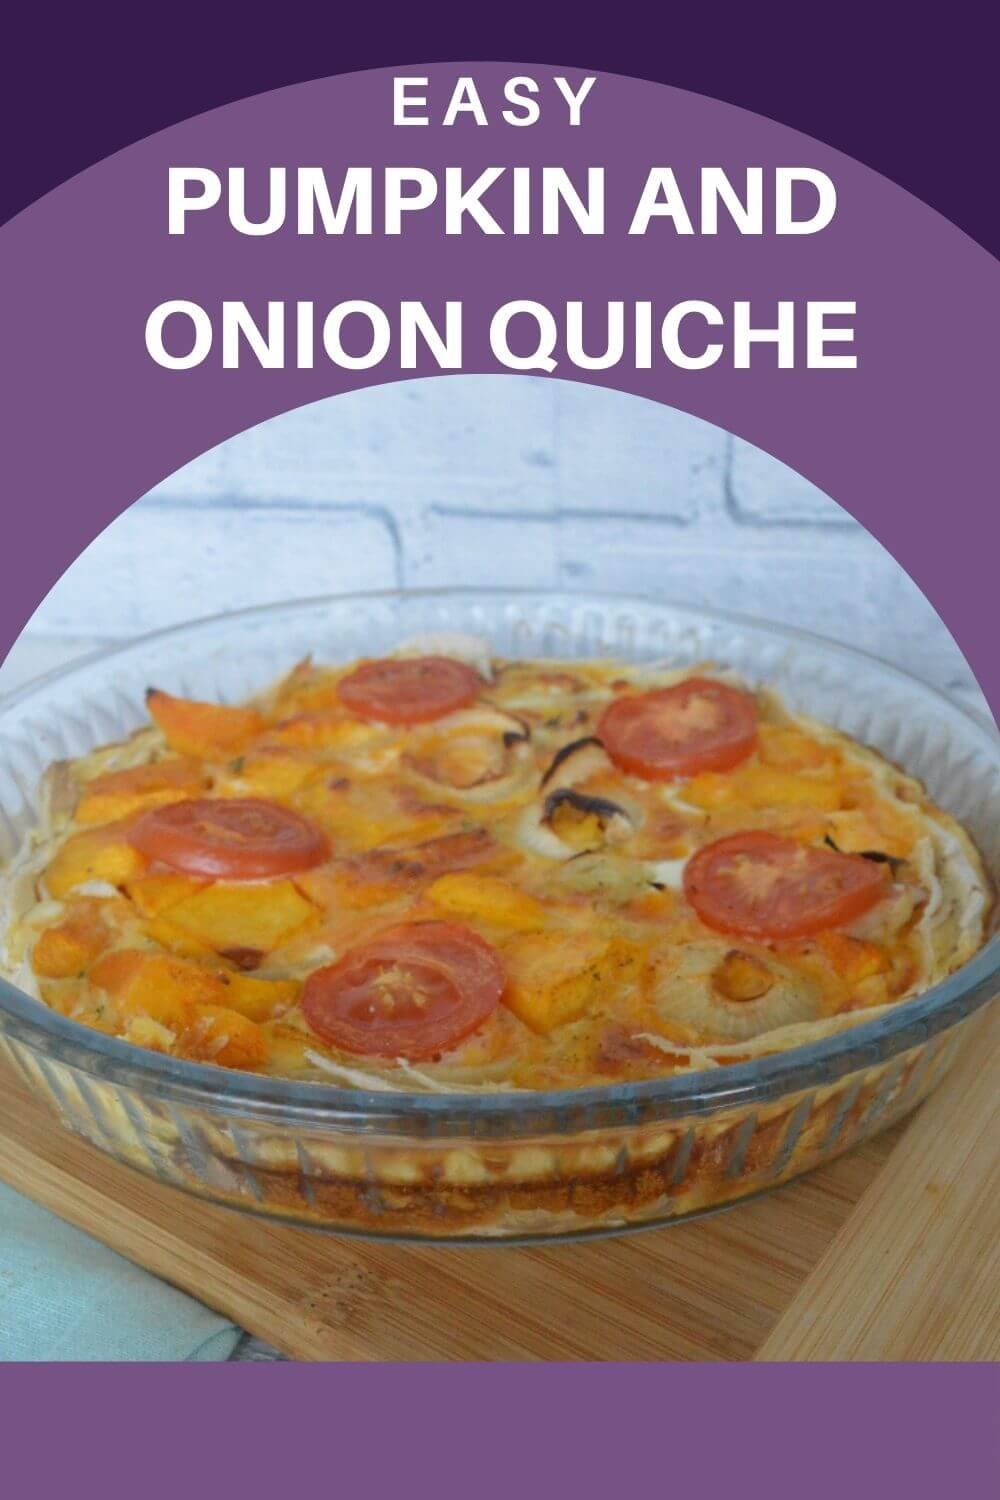 This pumpkin and onion quiche is easy to make and full of flavour.